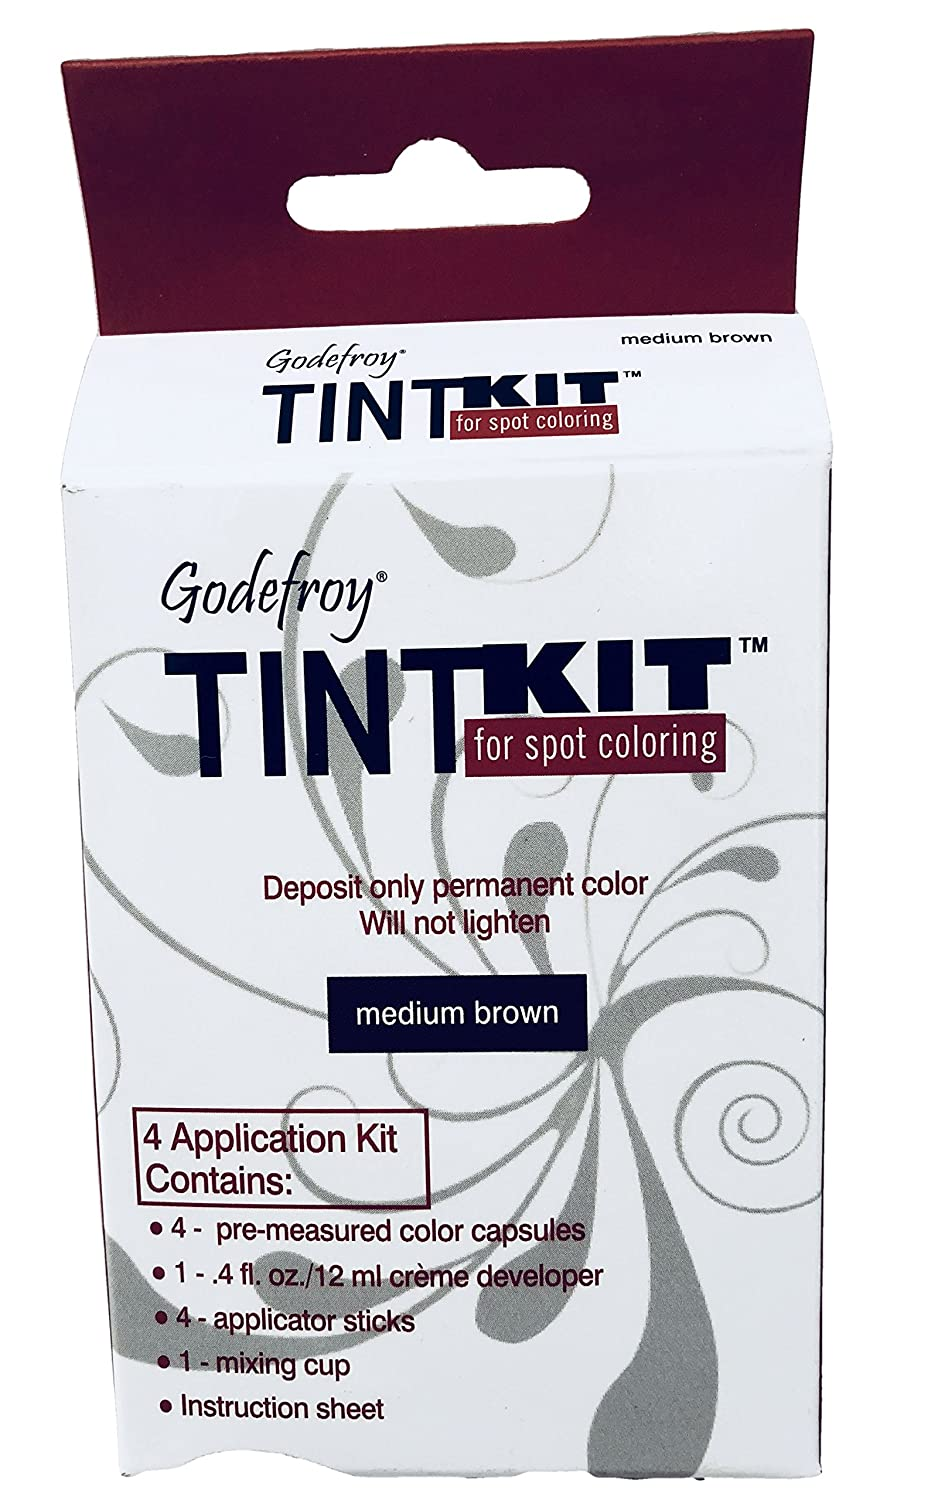 Godefroy instant tint permanent eyebrow color kit, Medium Brown, 15 ml